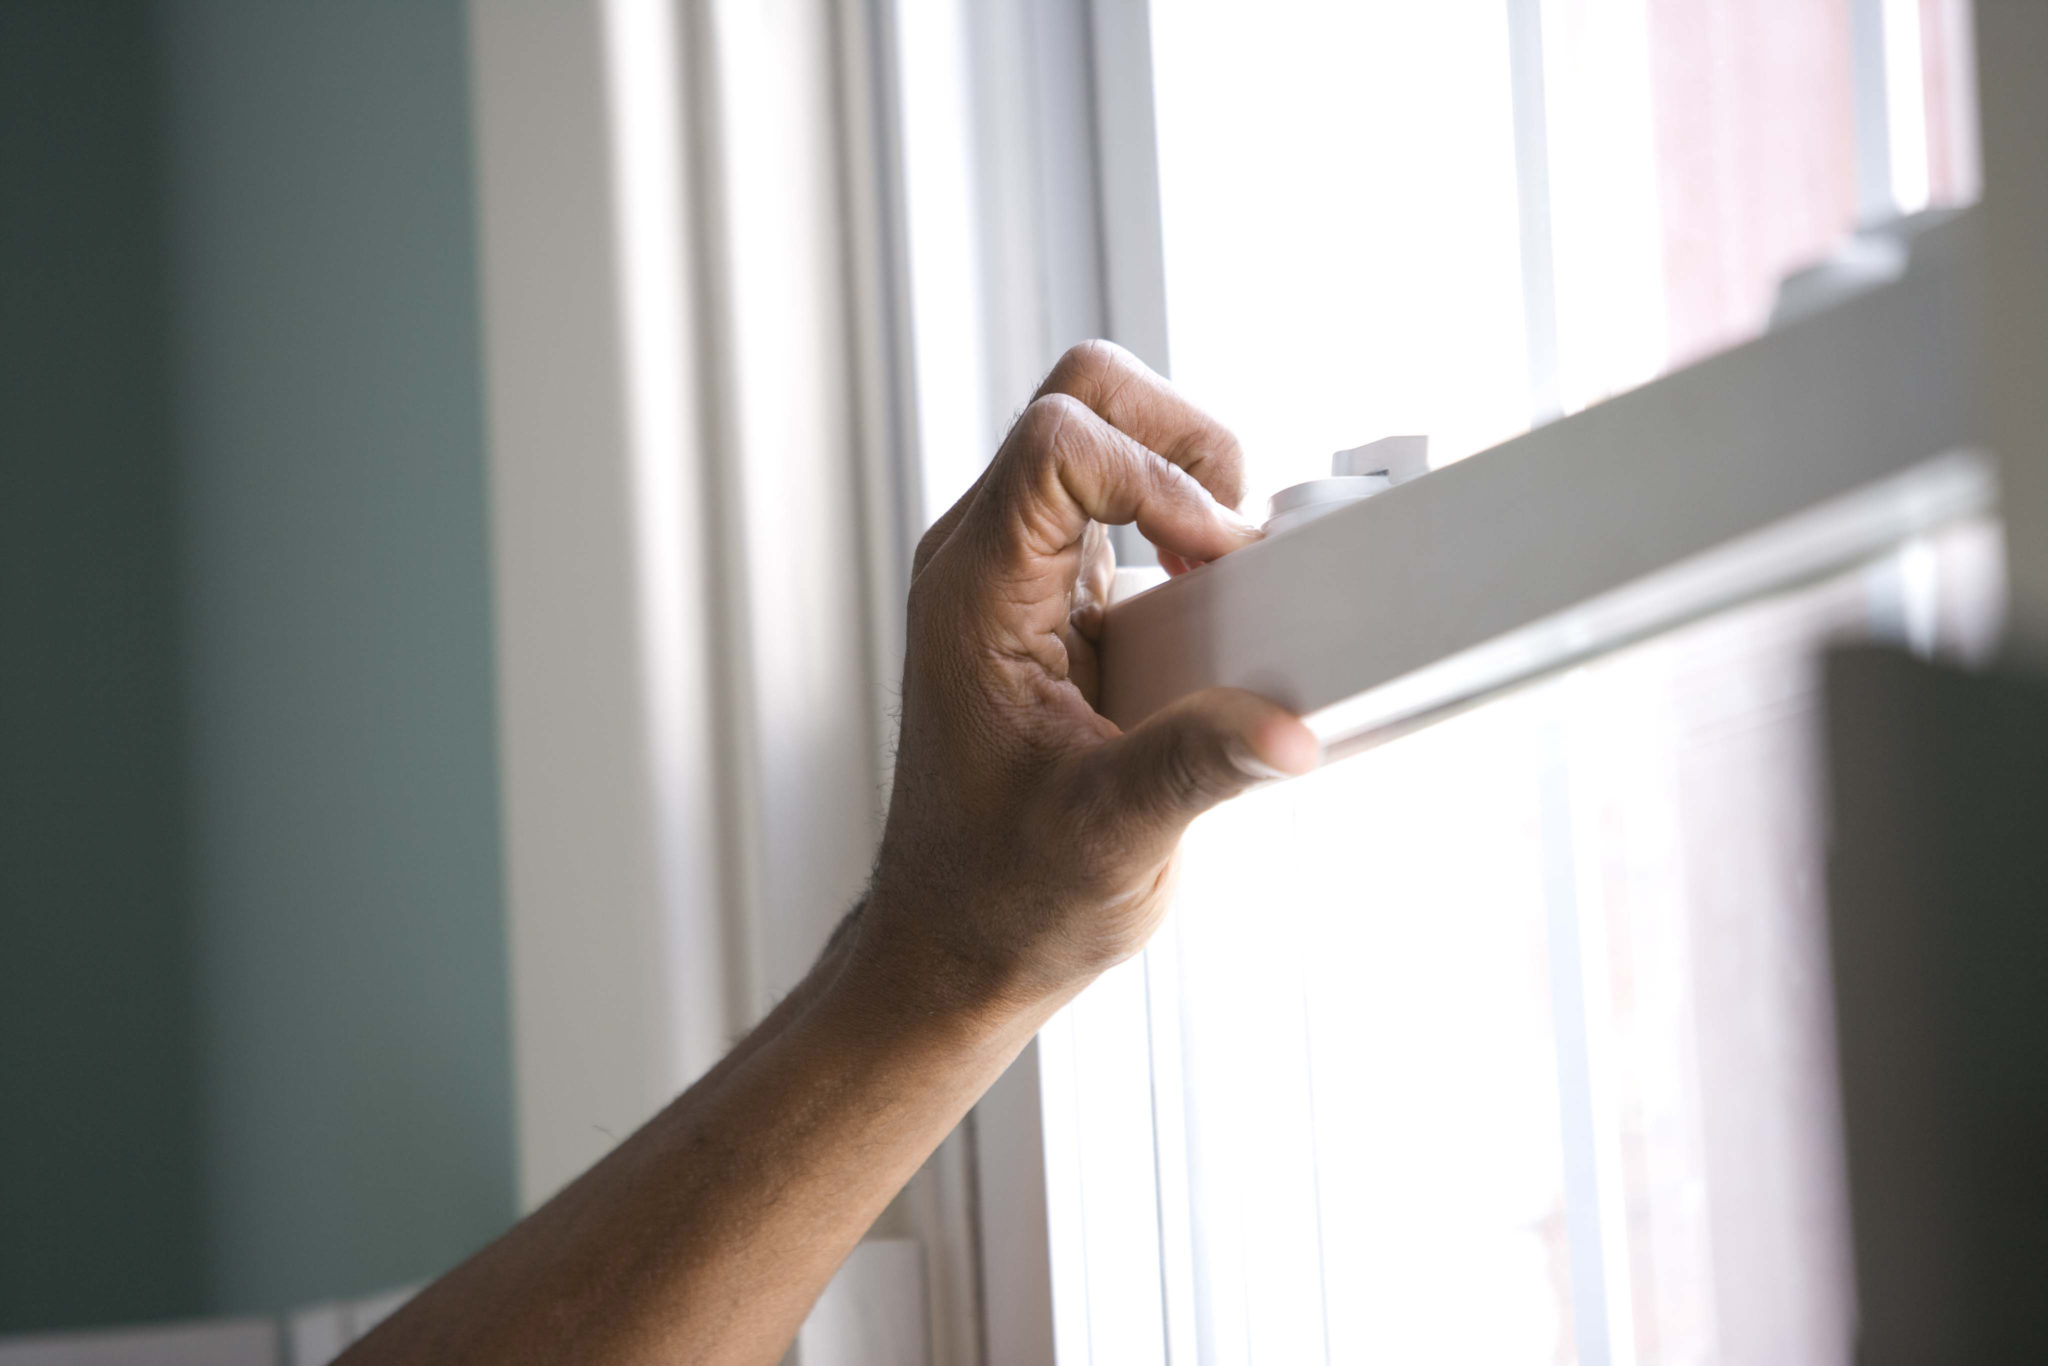 a hand opening a a sash window